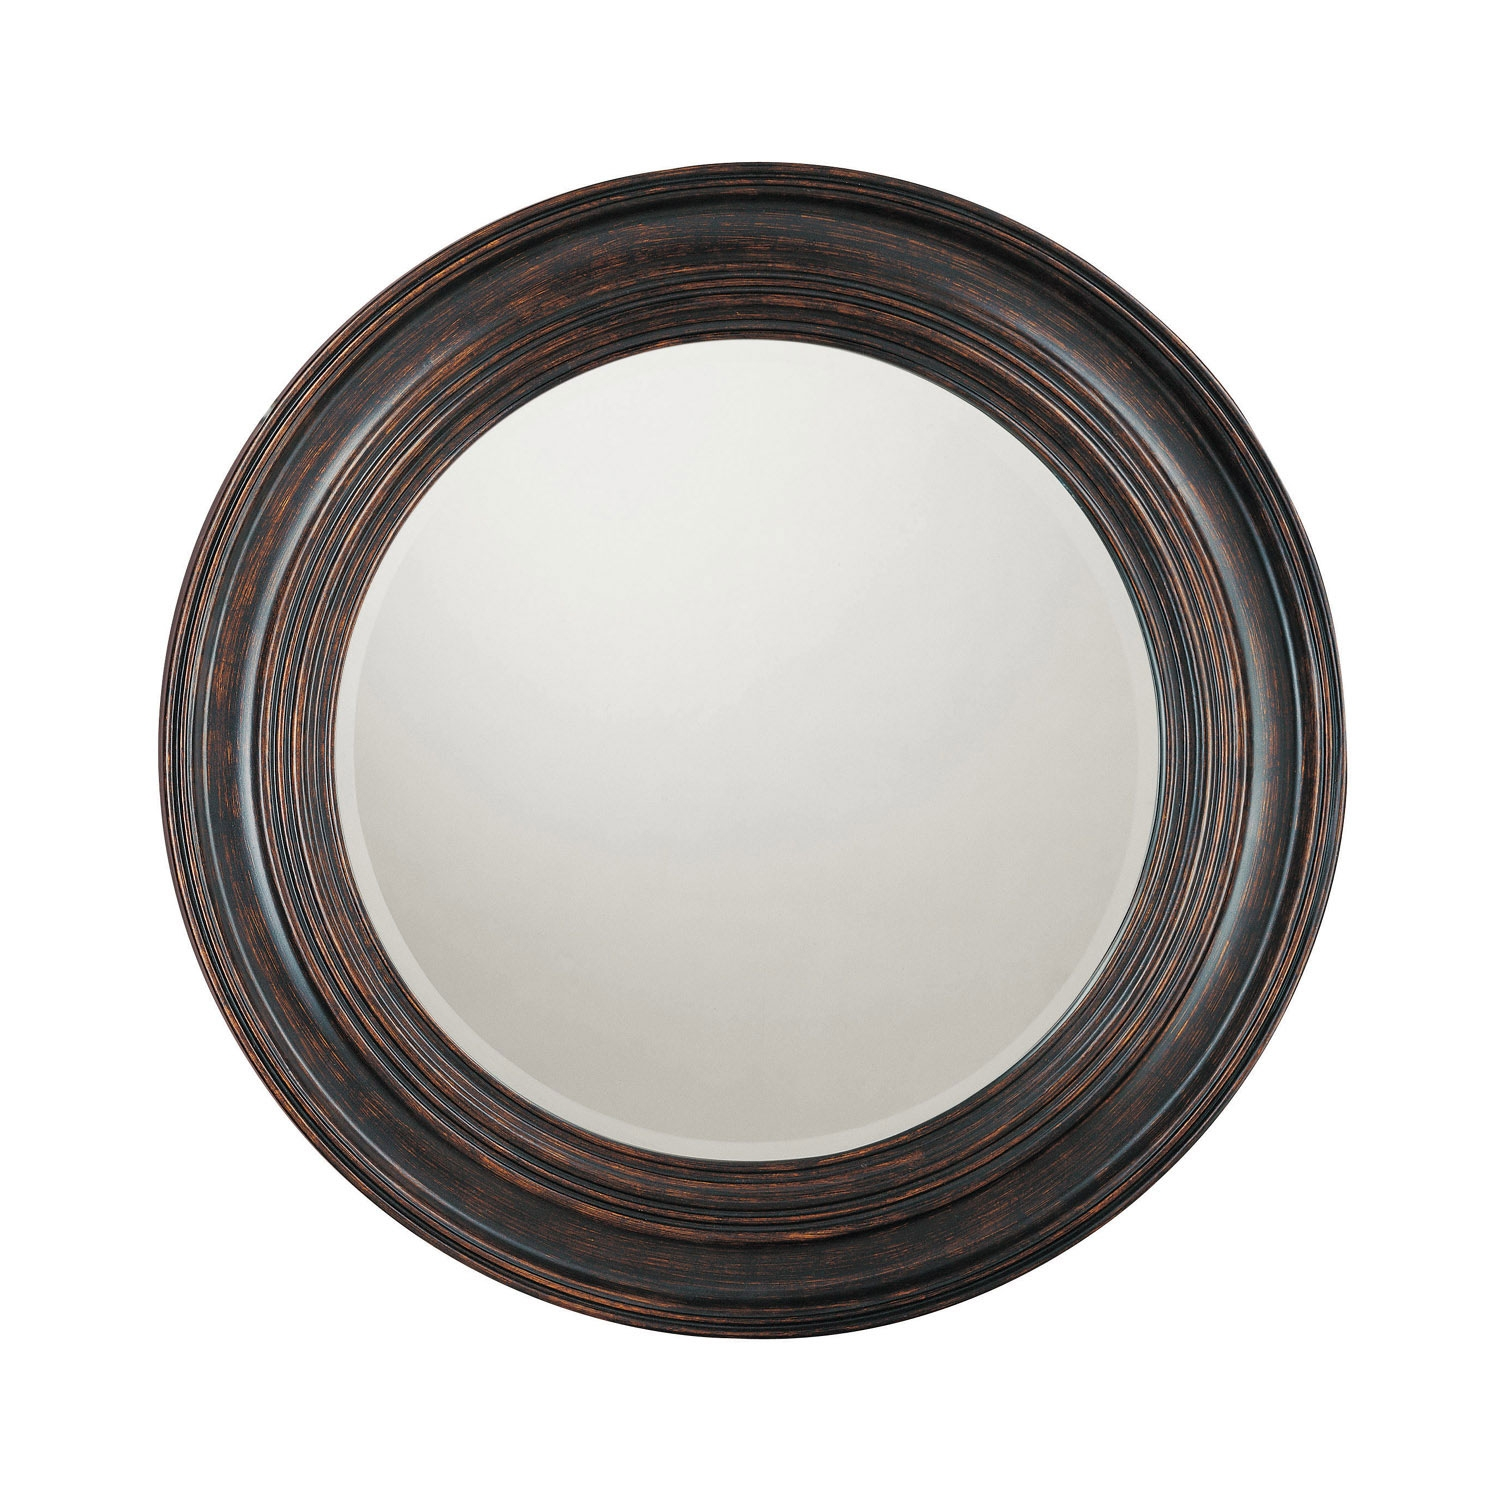 Capital Lighting Fixture Company Distressed Black Round Mirror Intended For Black Circle Mirrors (Image 3 of 15)